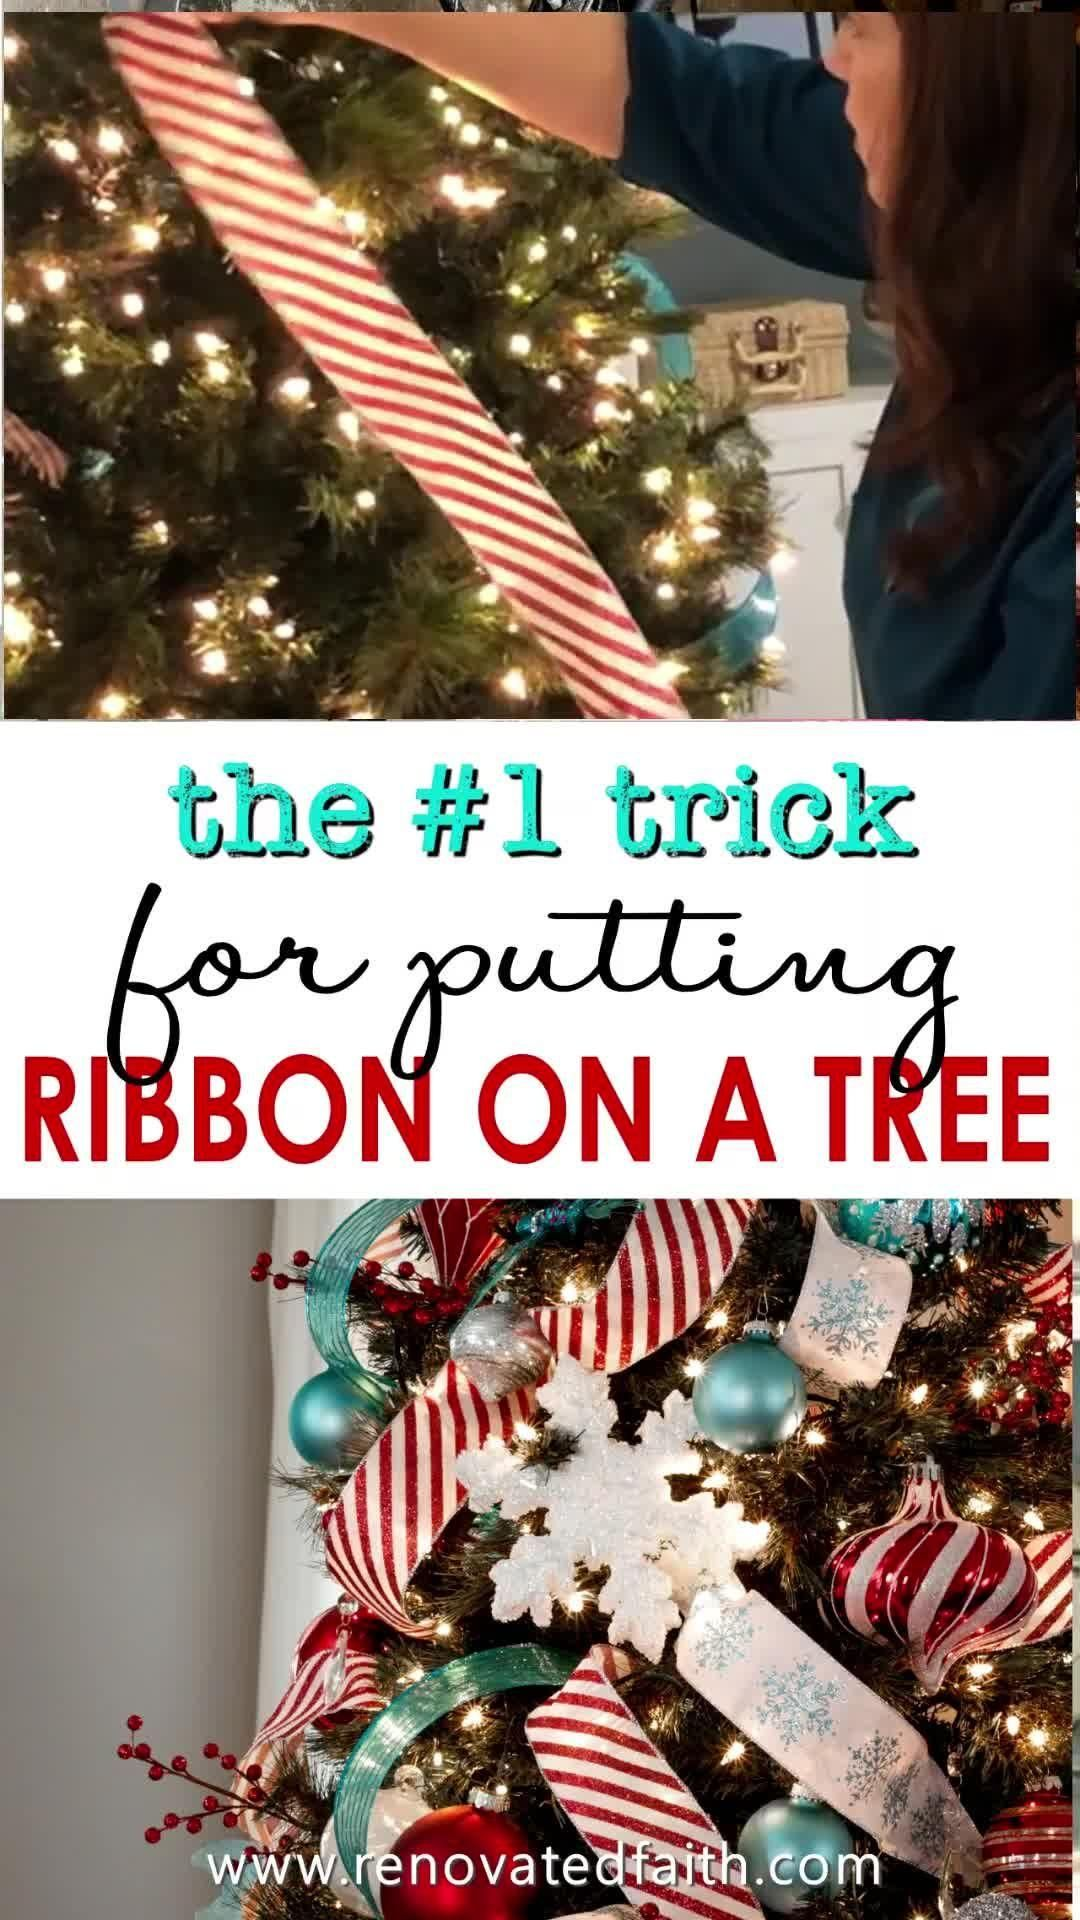 How To Add Ribbon To A Christmas Tree Christmas Tree Ribbon Topper Video Video In 2020 Ribbon On Christmas Tree Christmas Tree Christmas Tree Garland